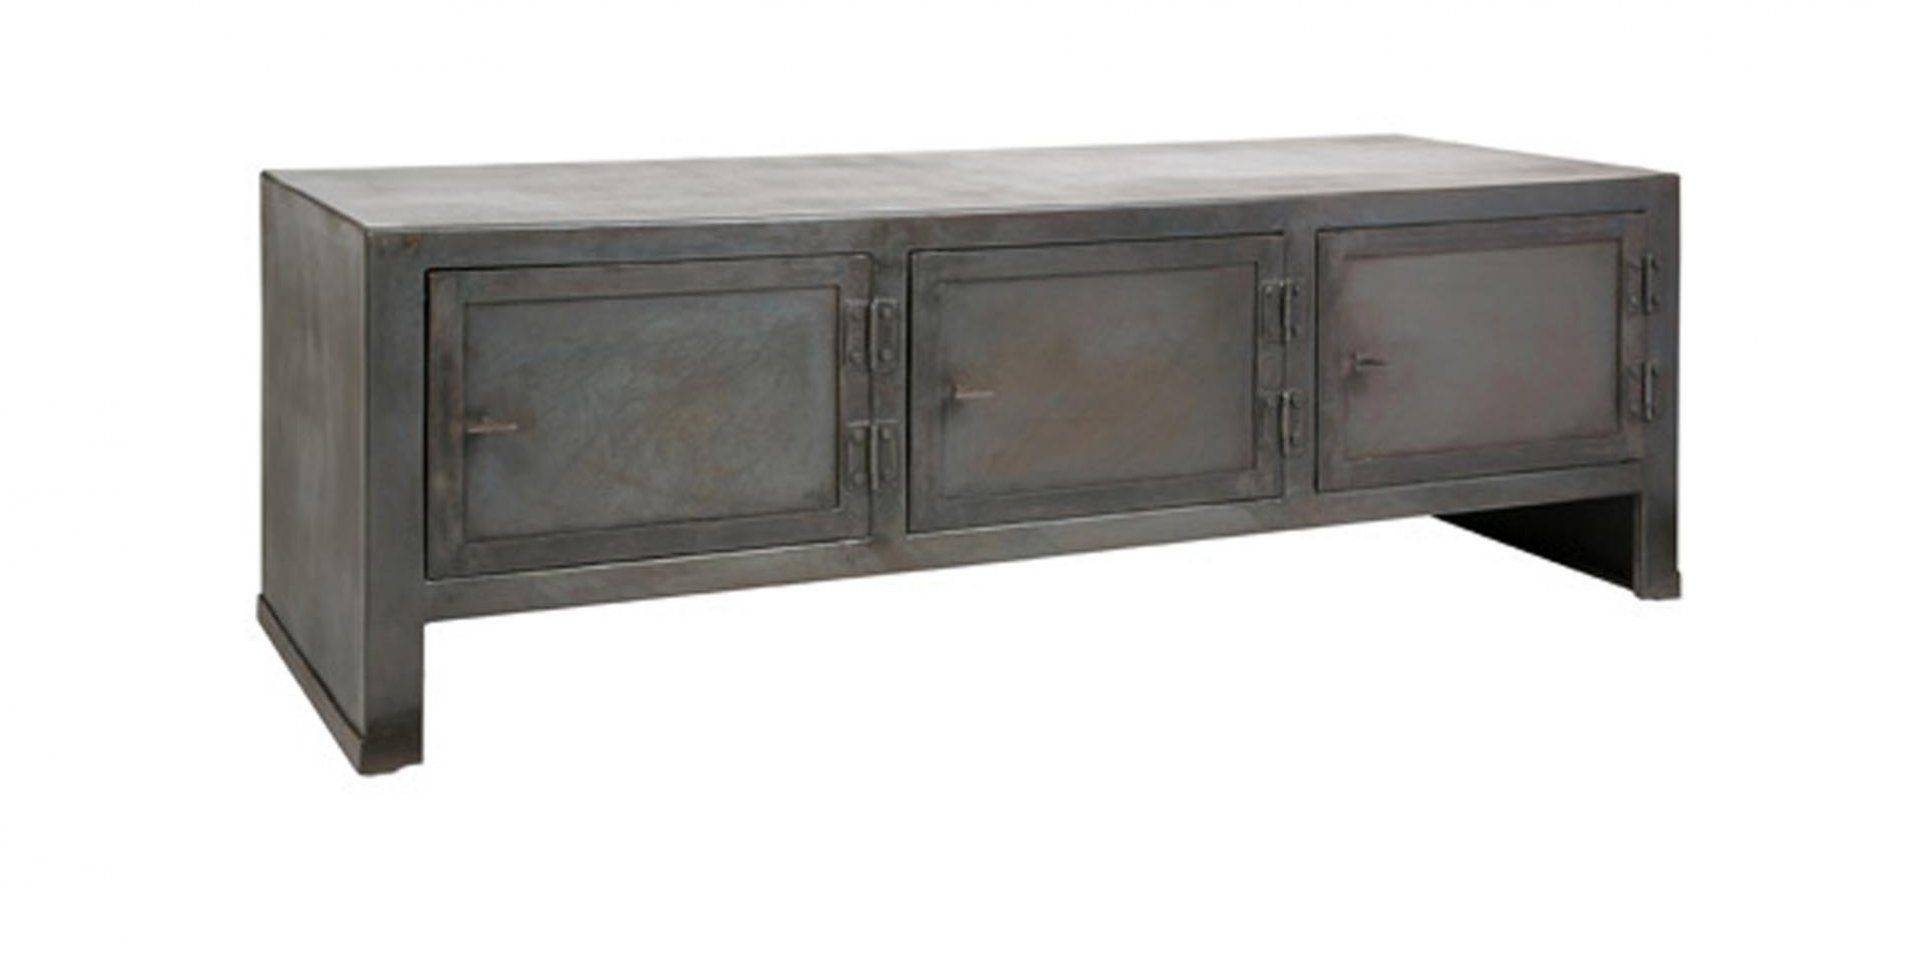 Industrial Style Sideboard / Steel / Solid Wood – Artcraft With Regard To Black And Silver Sideboard (#9 of 20)